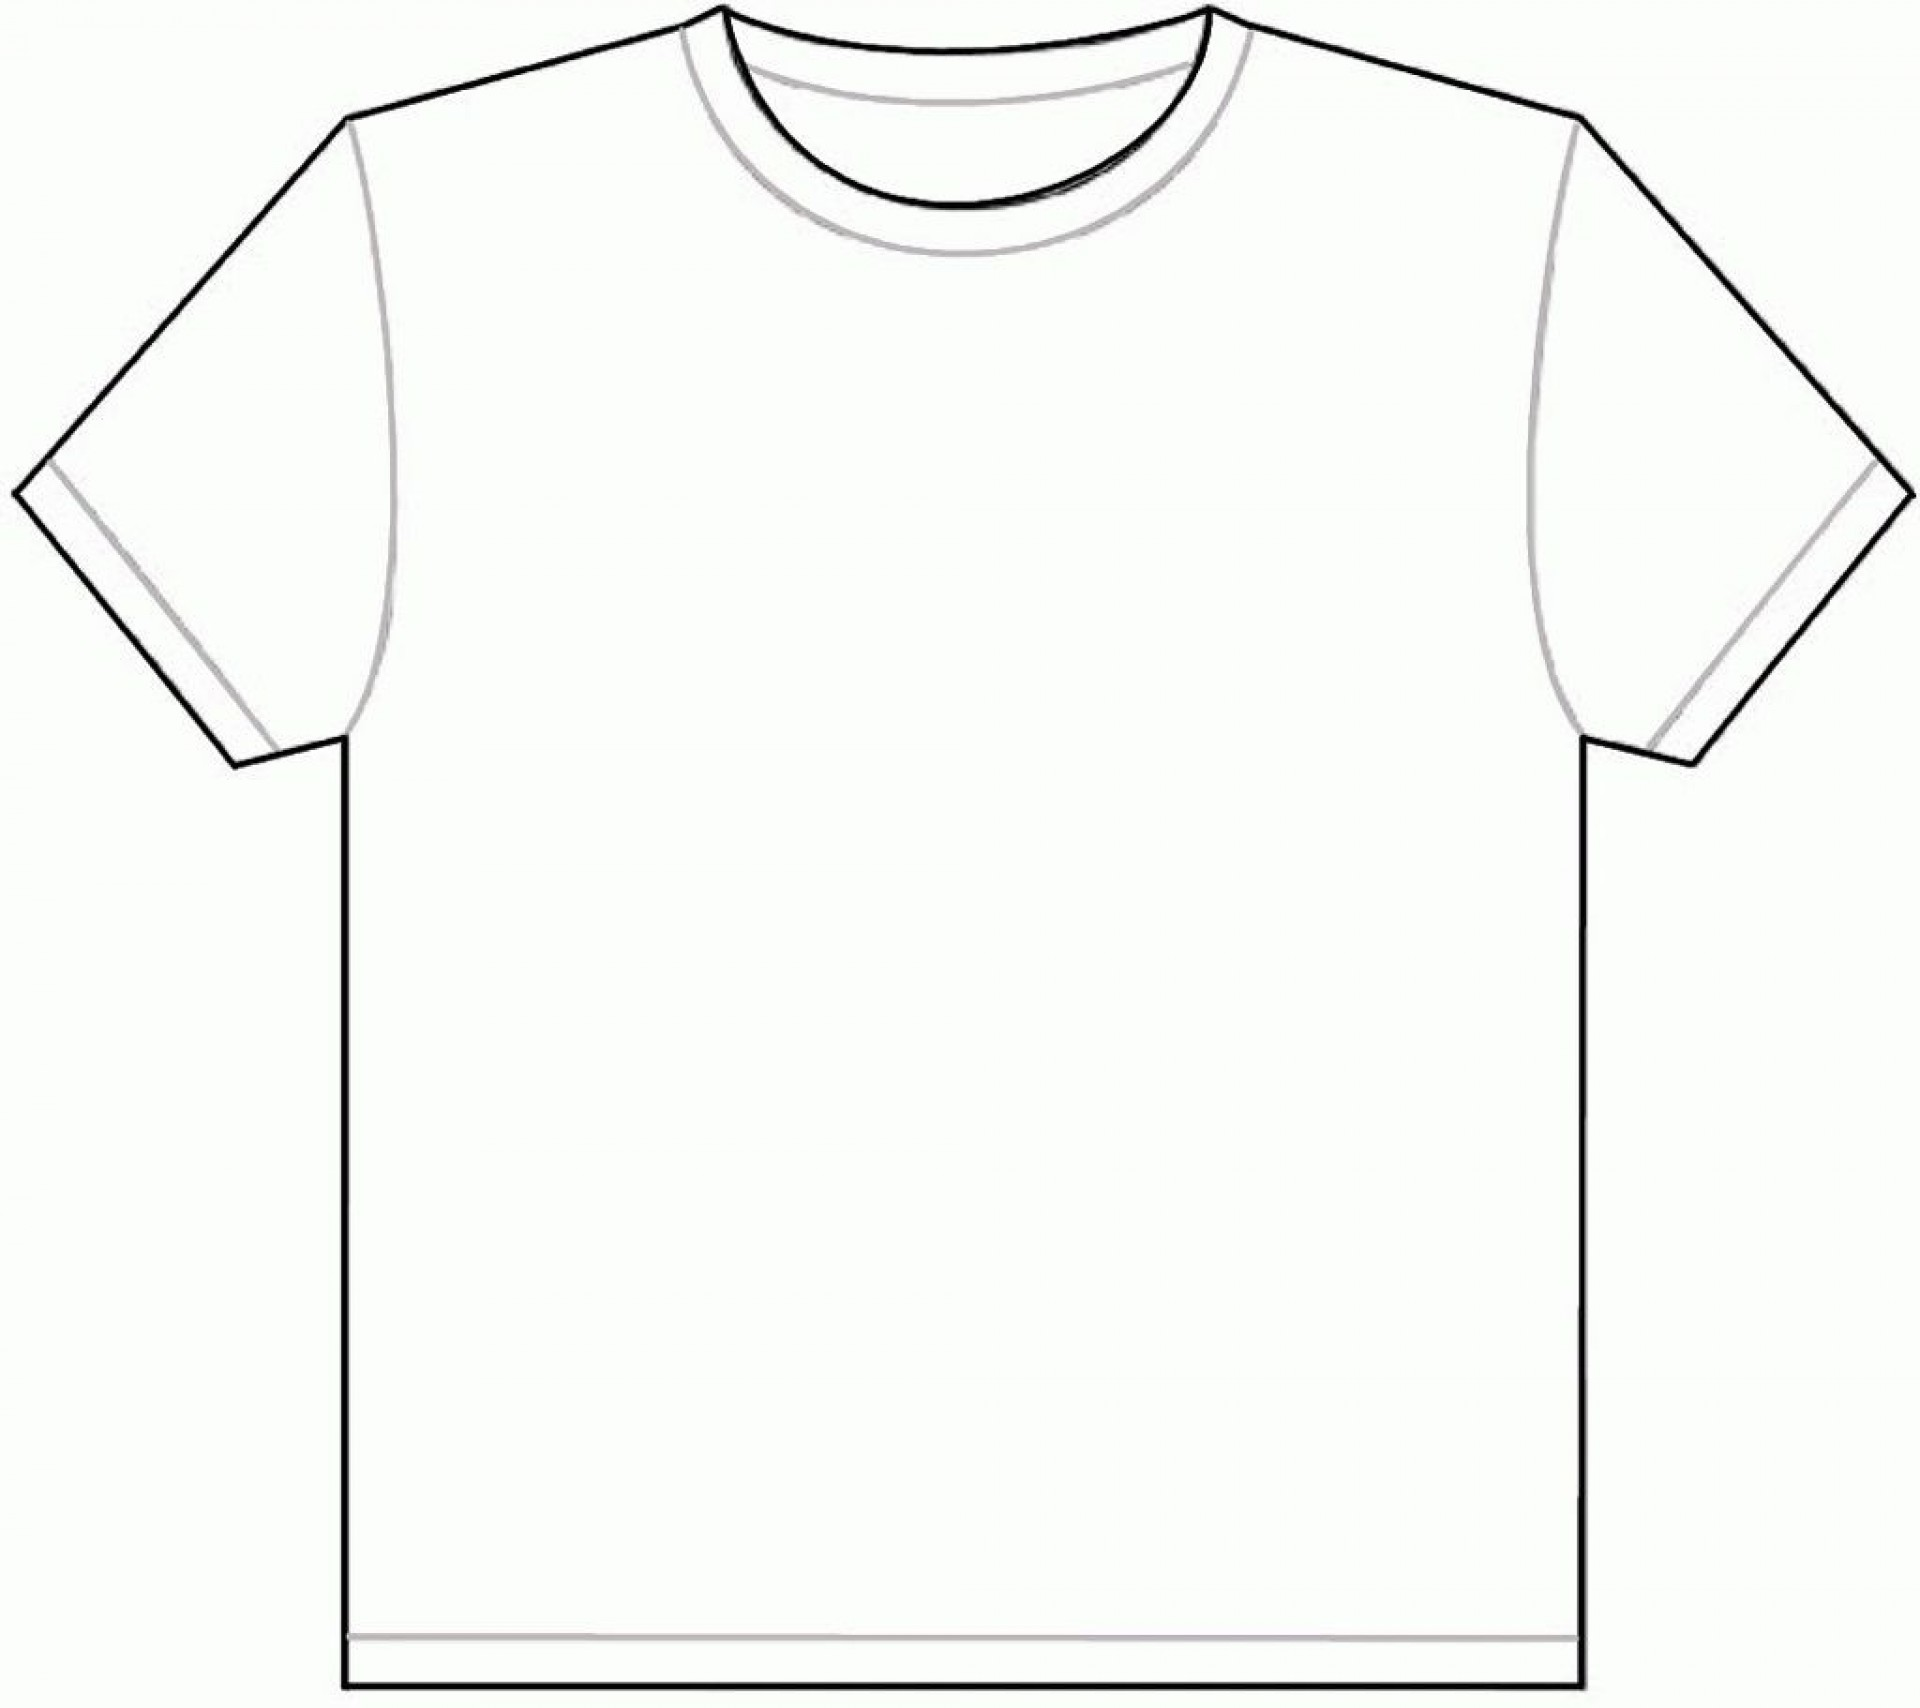 001 Outstanding Plain T Shirt Template Picture  Blank Front And Back1920